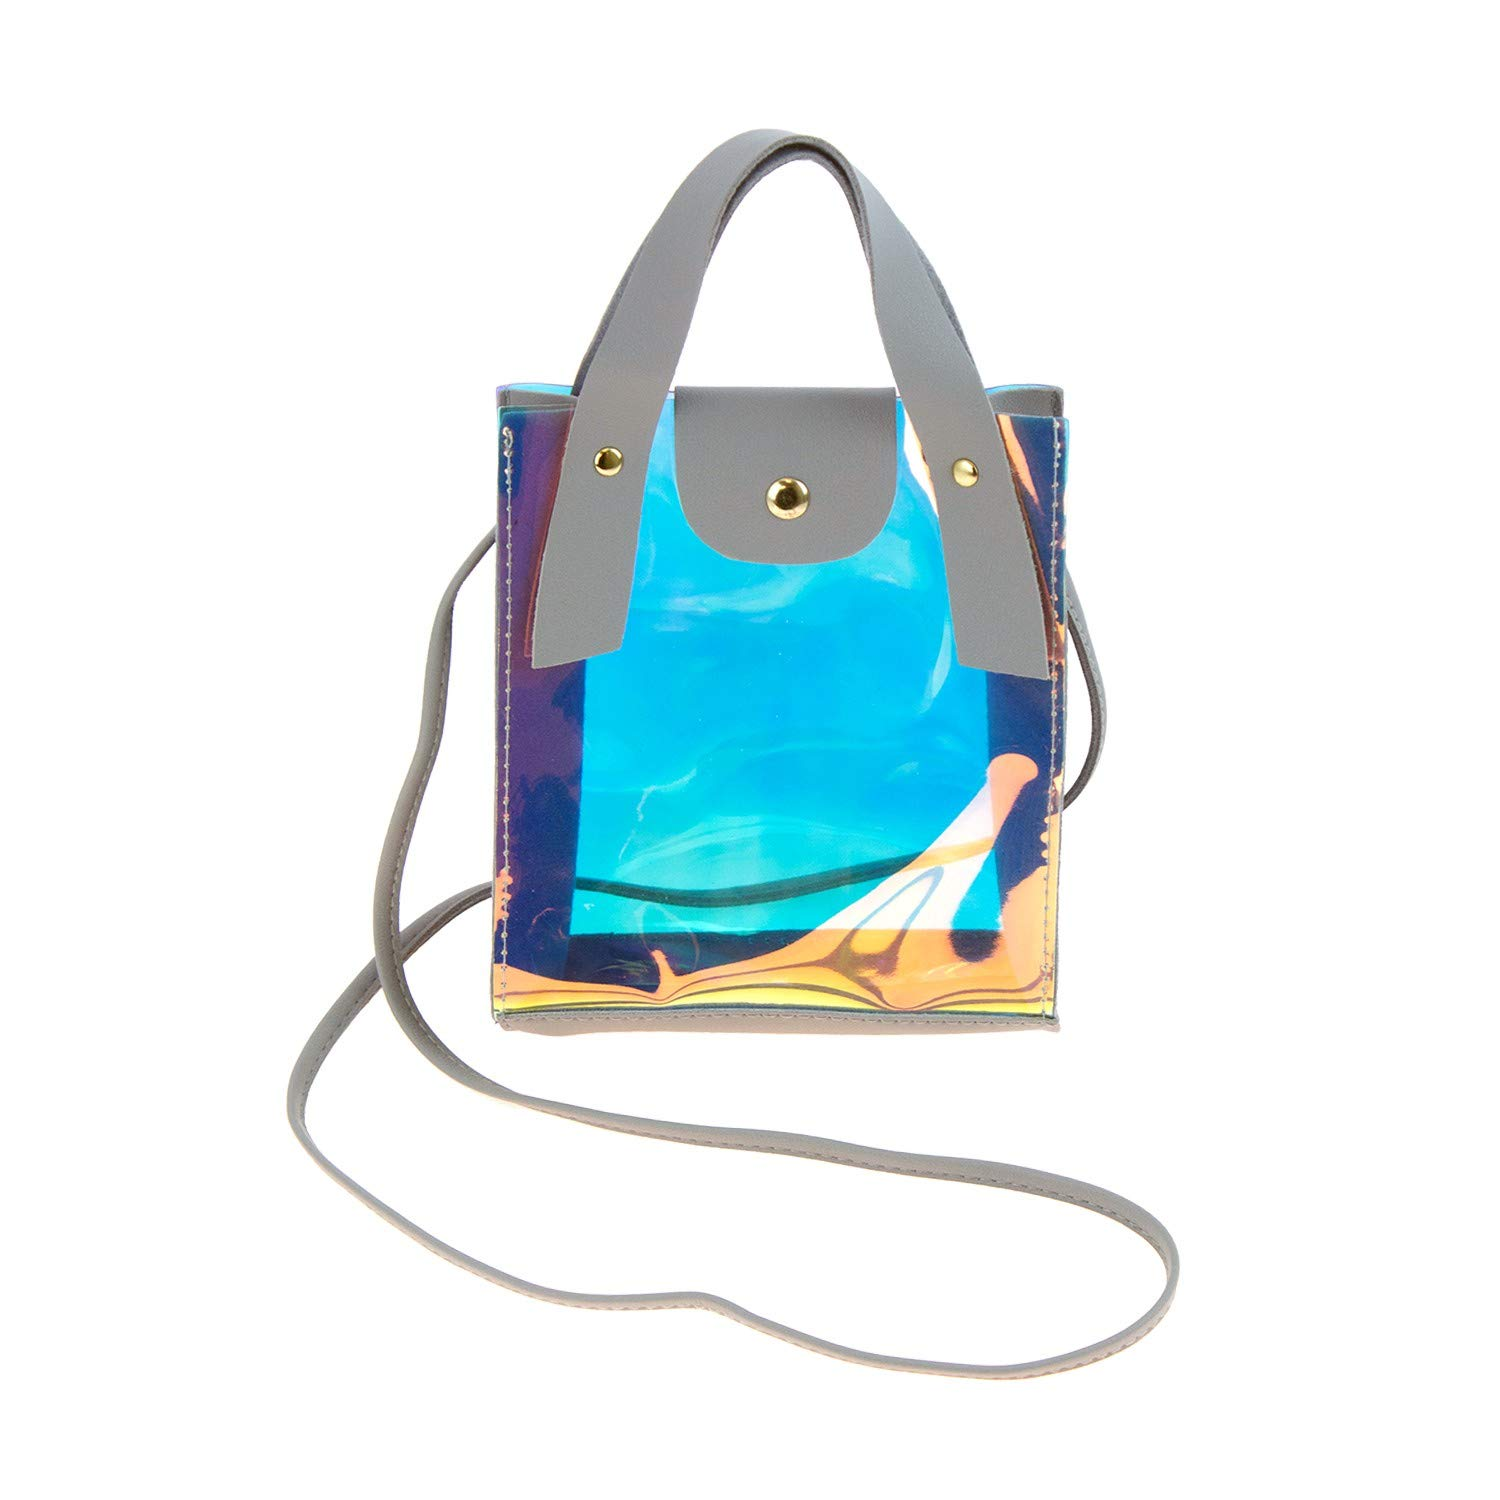 e50548e0b56e Amazon.com  Wholesale Women s Crossbody Bag Stadium Approved with Clear  Metallic in 3 Assorted Colors - Bulk Case of Shoulder Bags  Clothing